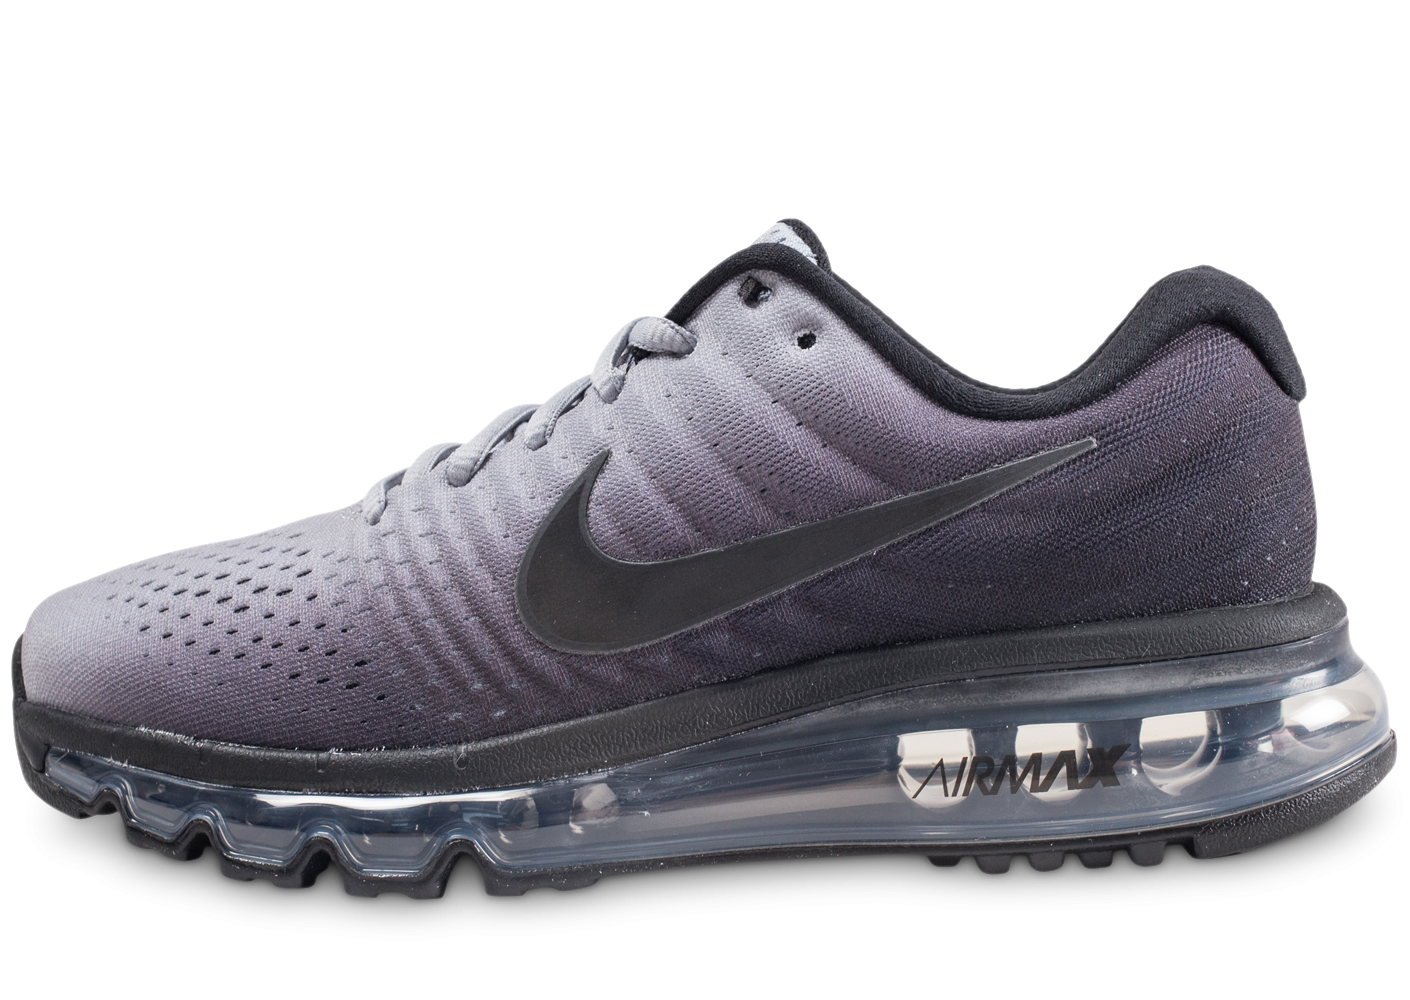 8a15562378a ... discount code for nike air max 2017 grise junior chaussures black  friday chaussures et baskets chausport